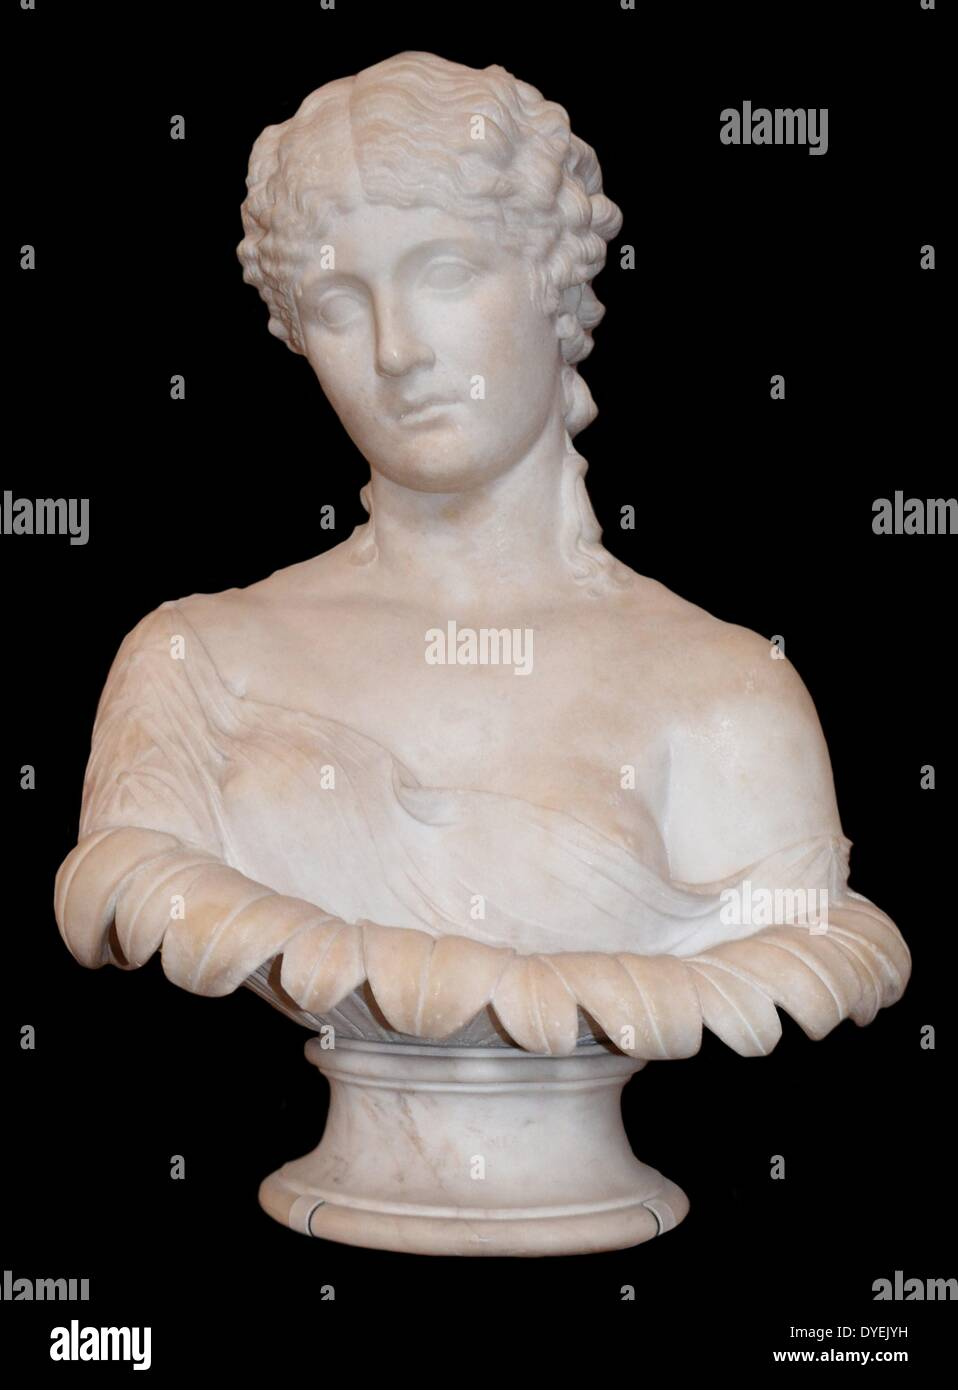 Marble Bust Portrait of Clytie 47 A.D. - Stock Image